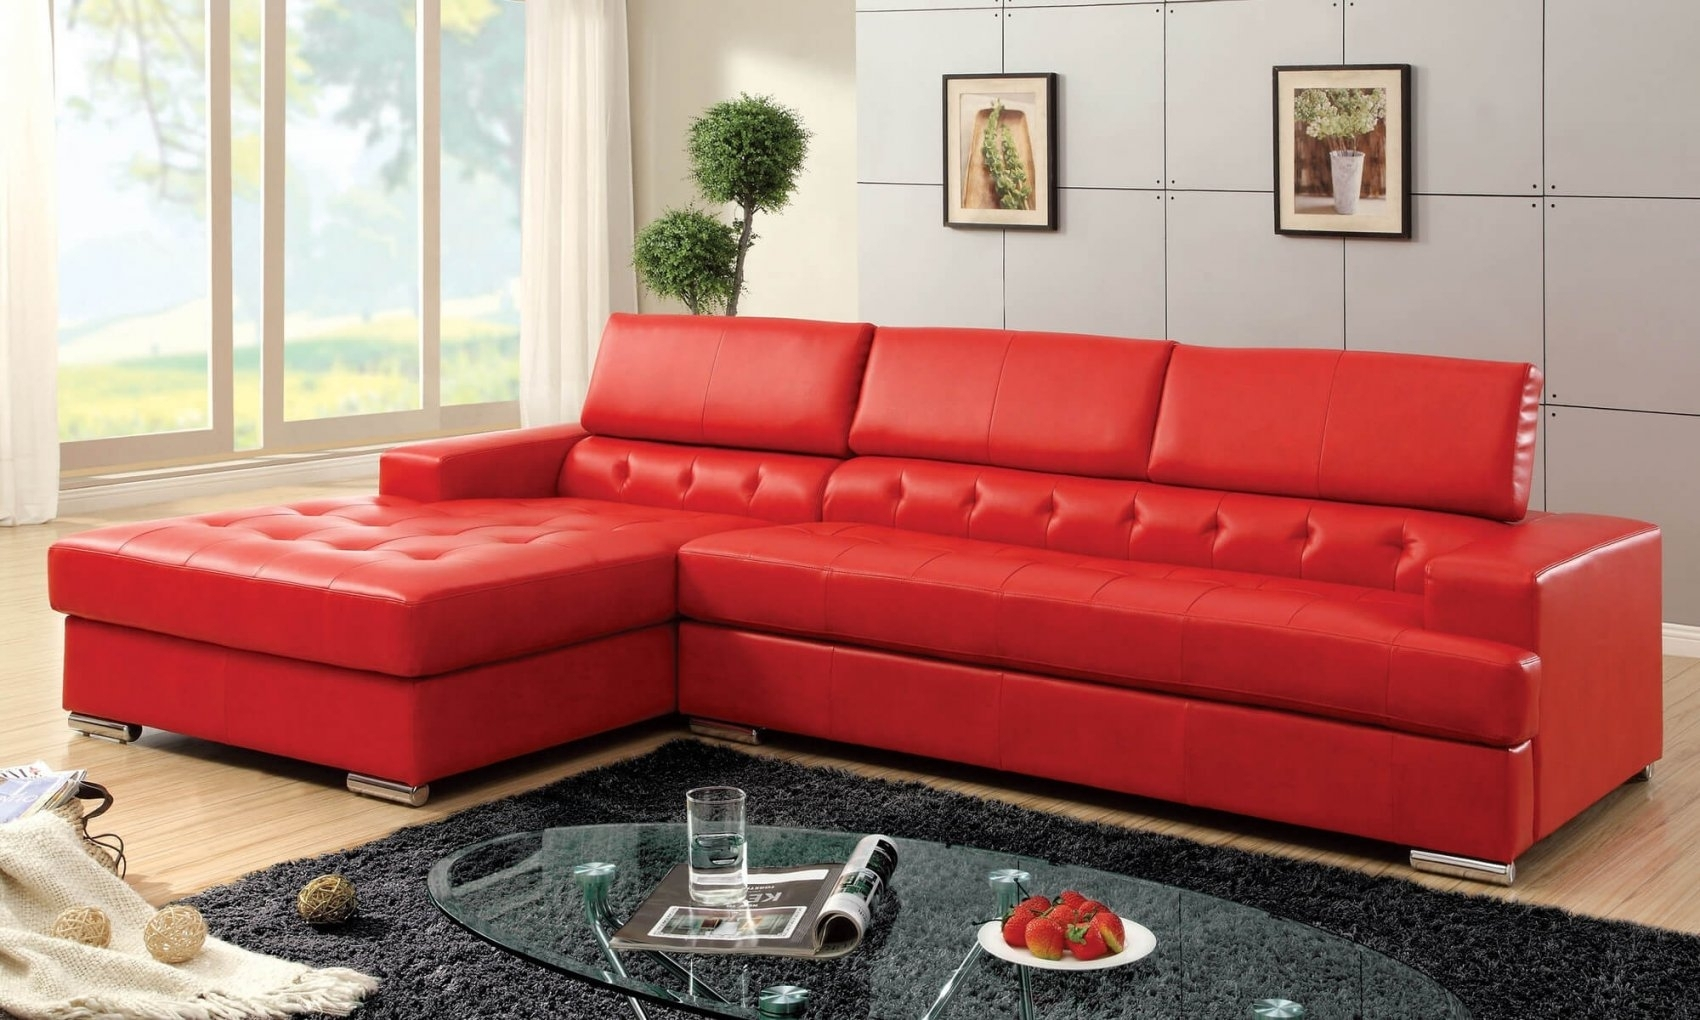 Red Leather Sectional Sofa Contemporary - Best Sectional In with regard to Red Leather Sectional Sofas With Ottoman (Image 11 of 15)